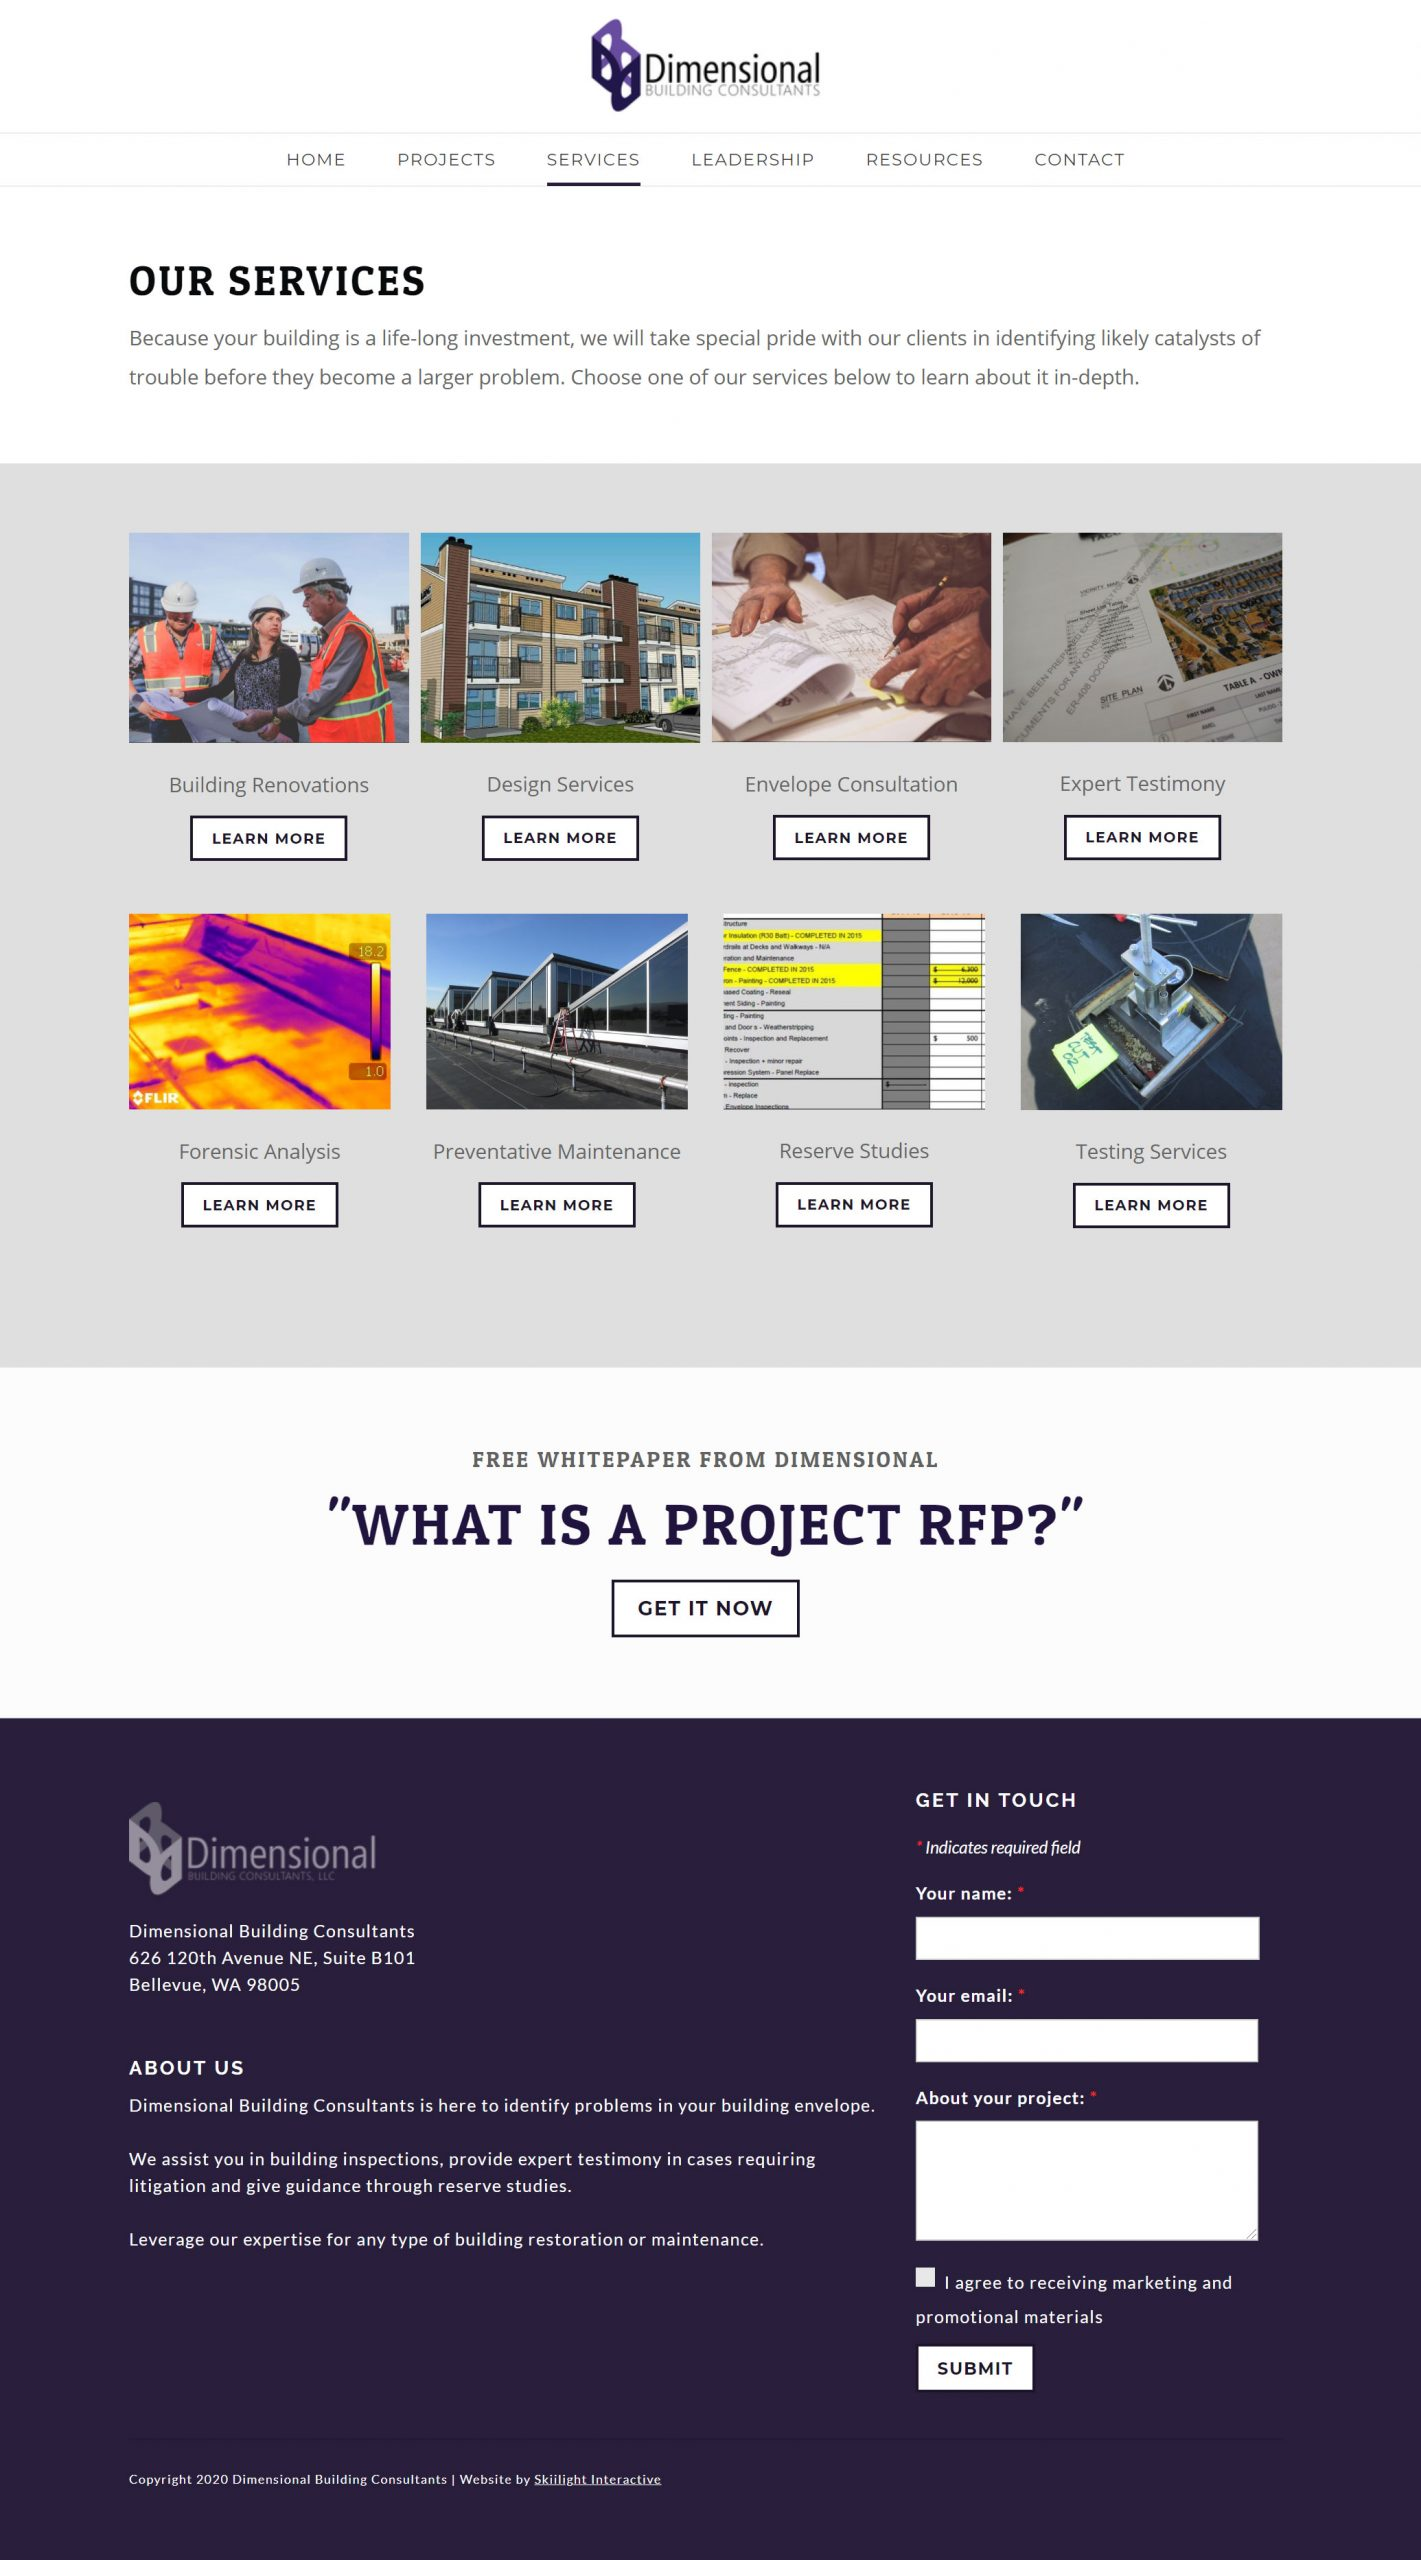 Dimensional Building Consultants new website